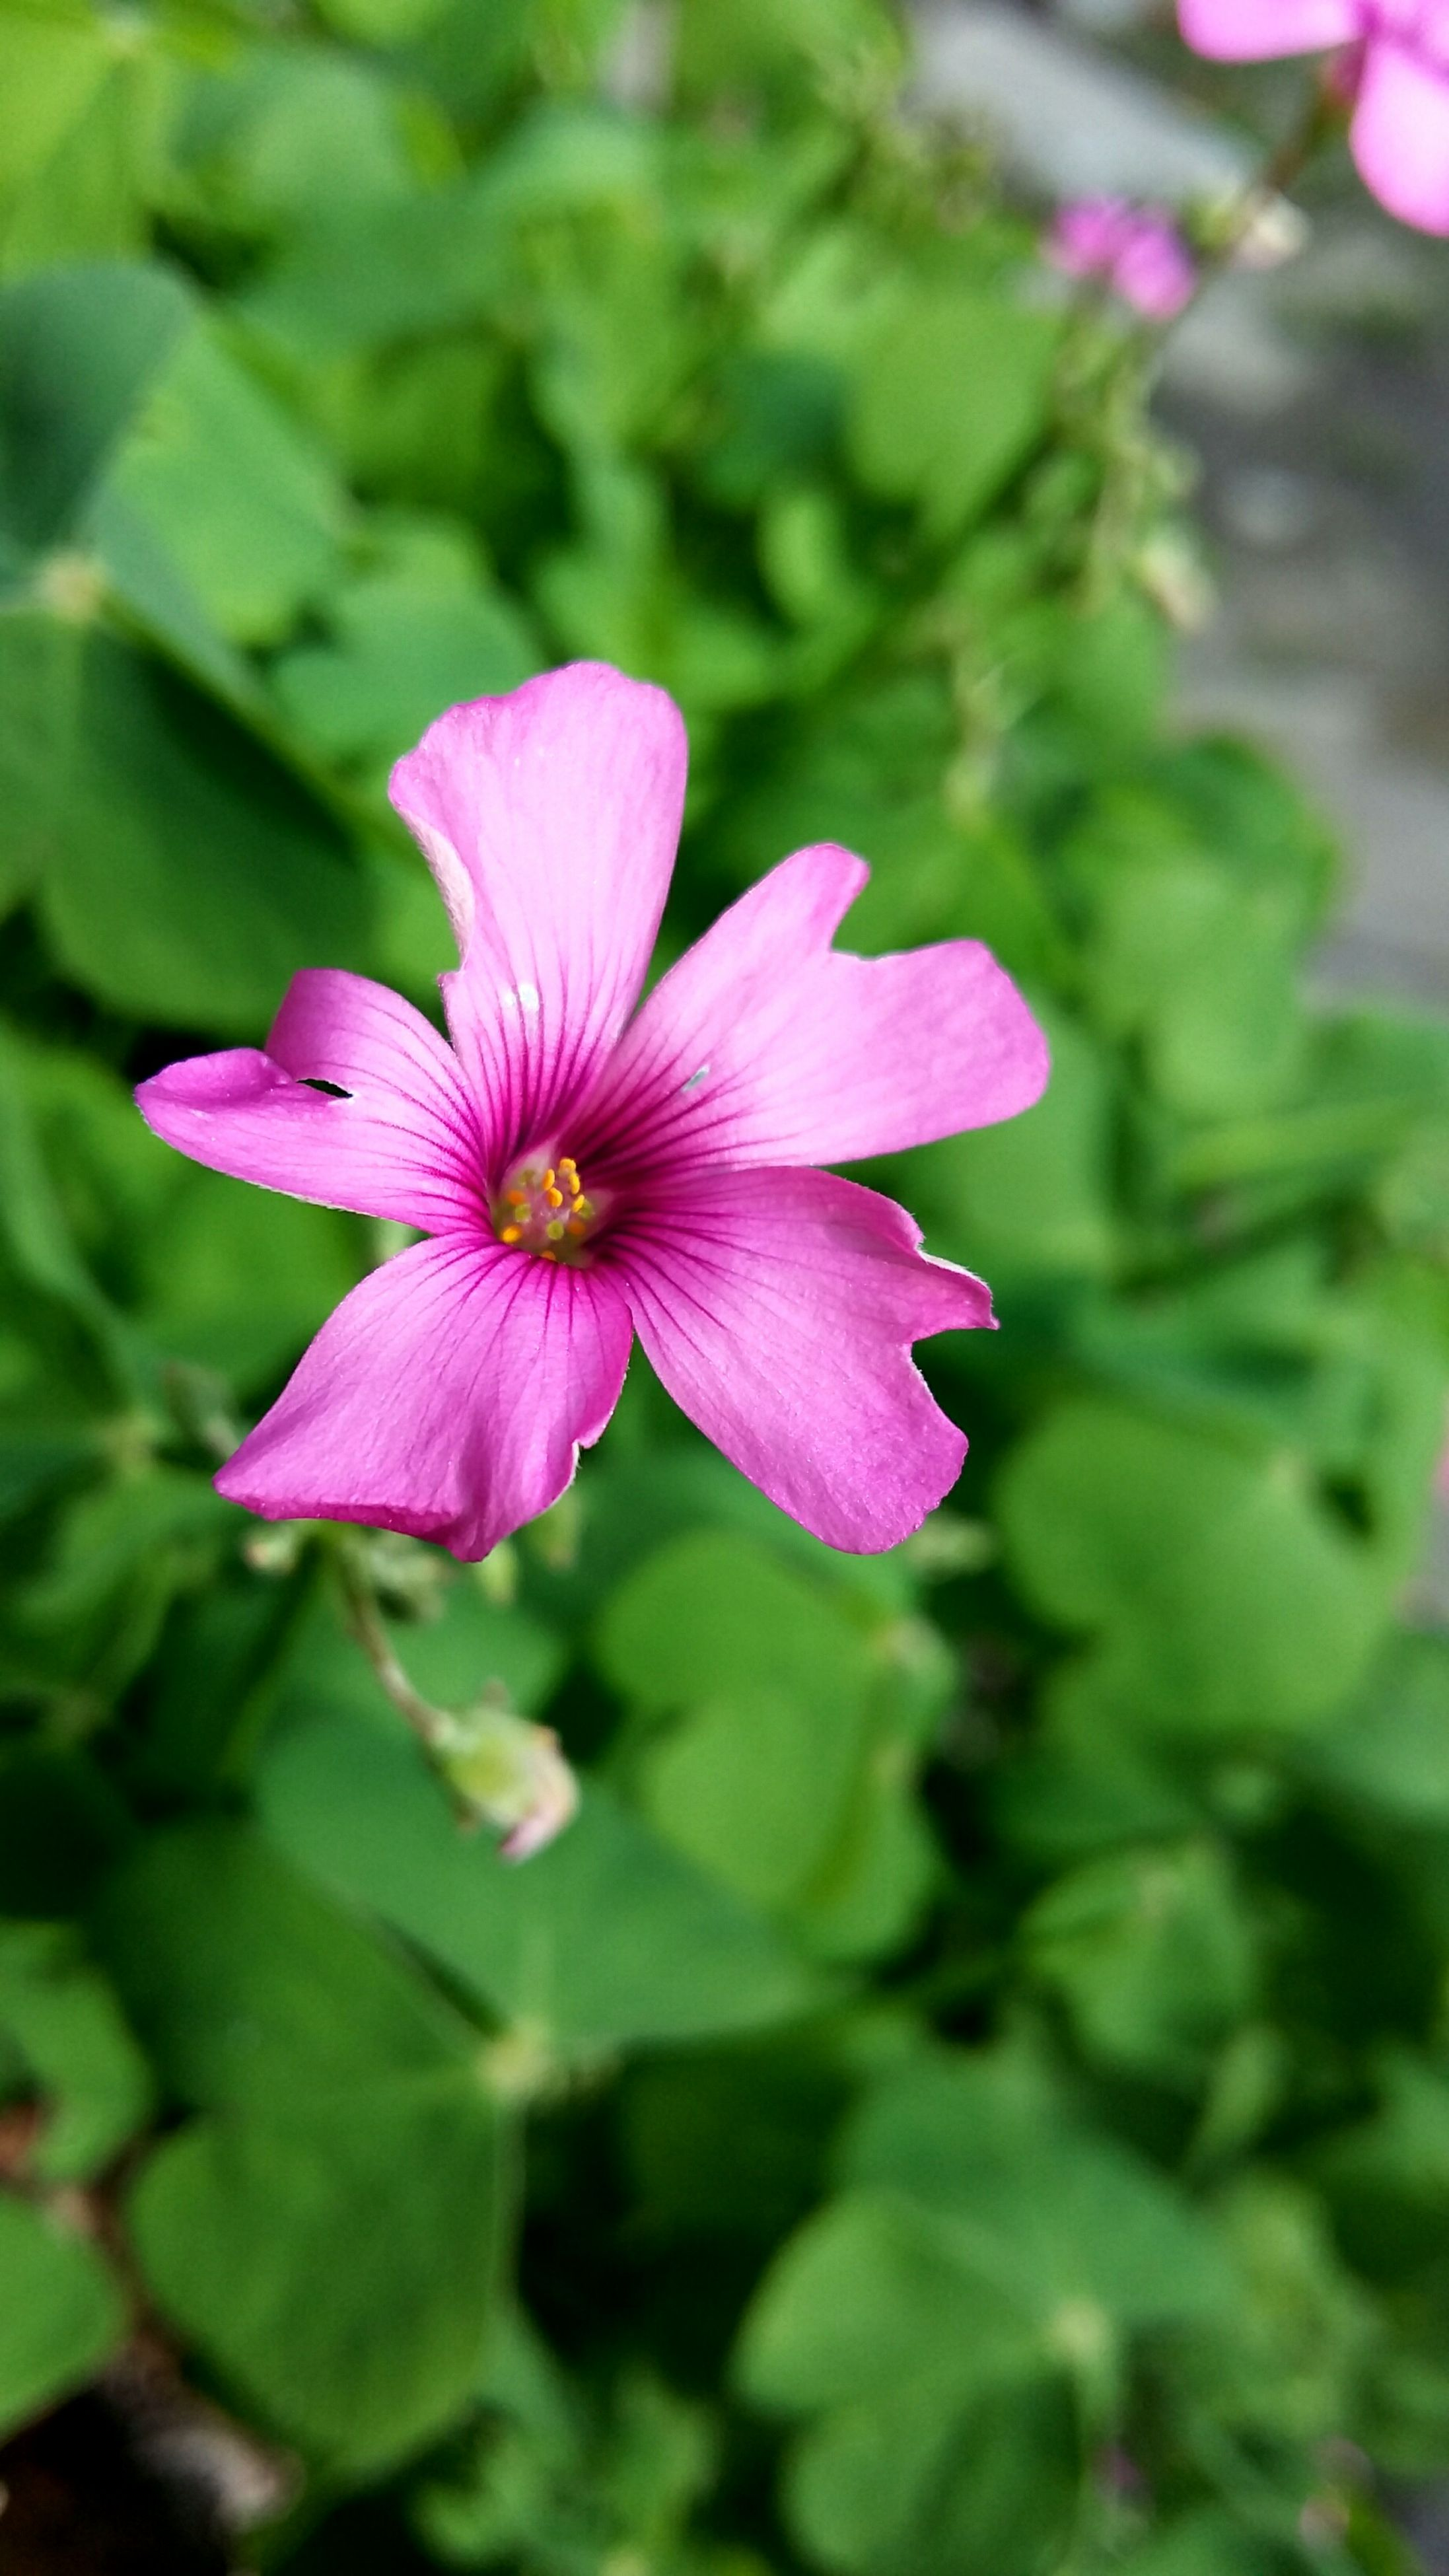 flower, petal, freshness, fragility, pink color, flower head, growth, beauty in nature, close-up, focus on foreground, blooming, nature, single flower, stamen, plant, pink, in bloom, pollen, blossom, leaf